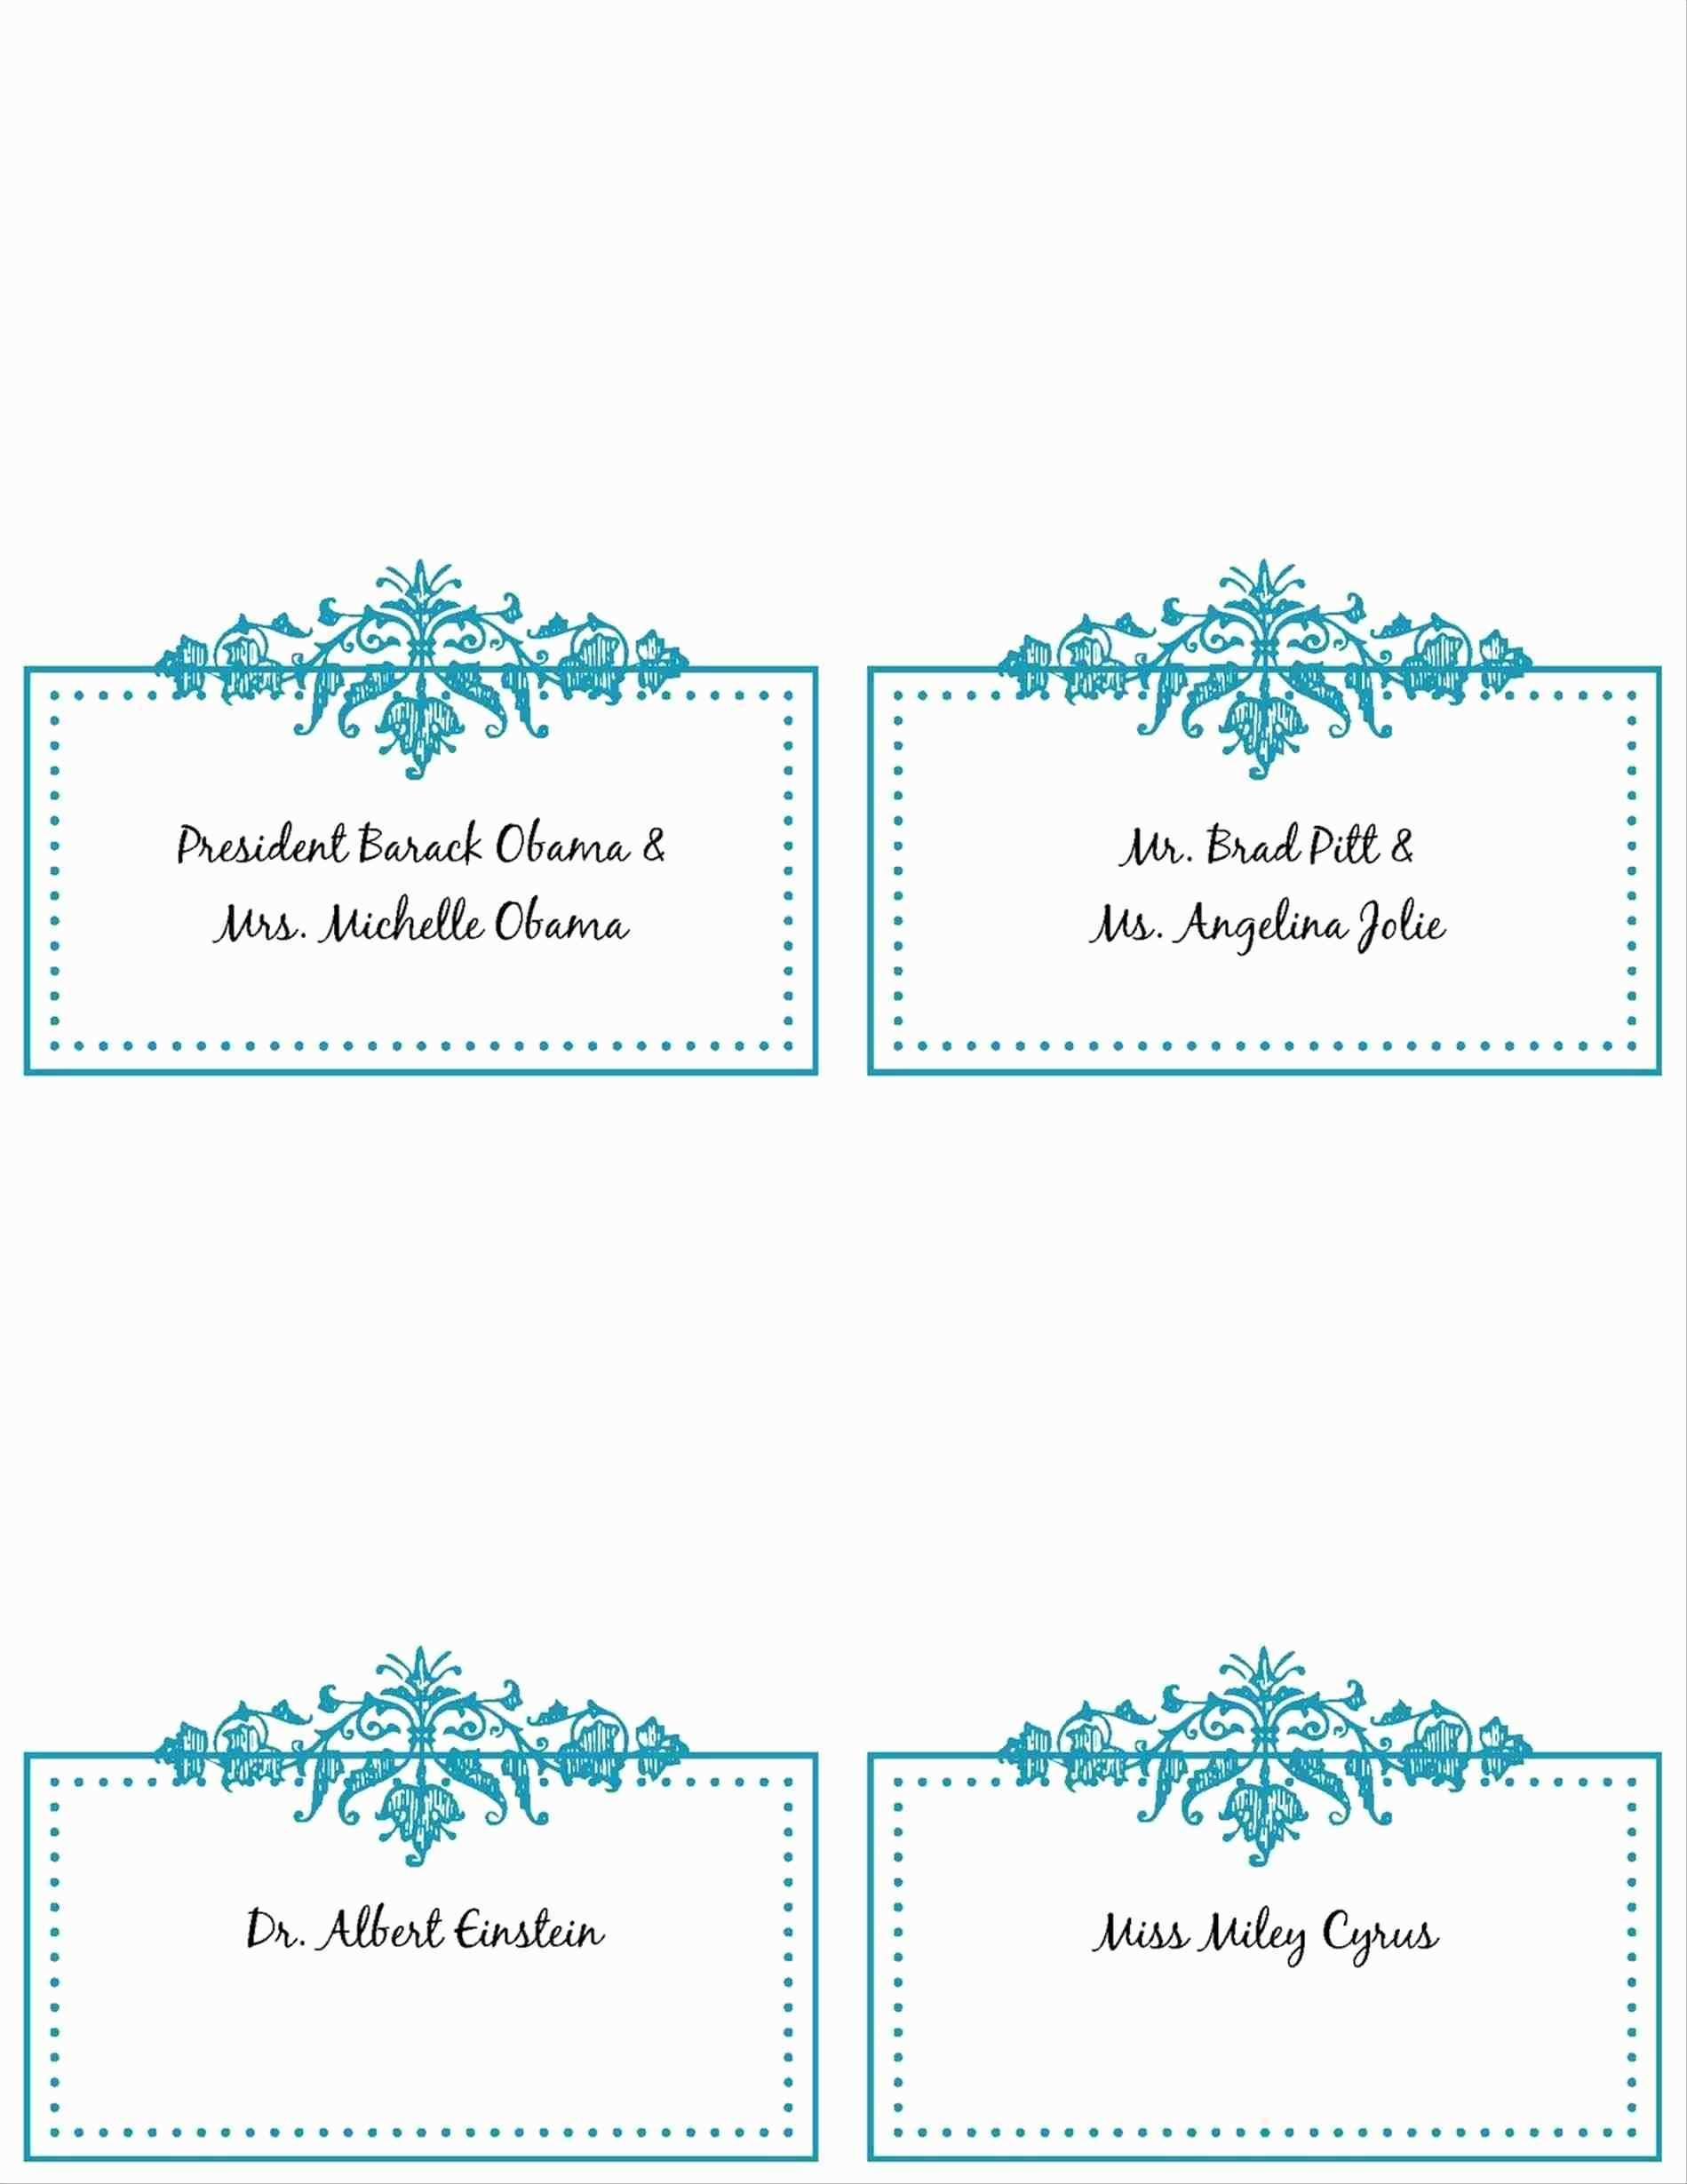 Avery Name Badges Template 74652